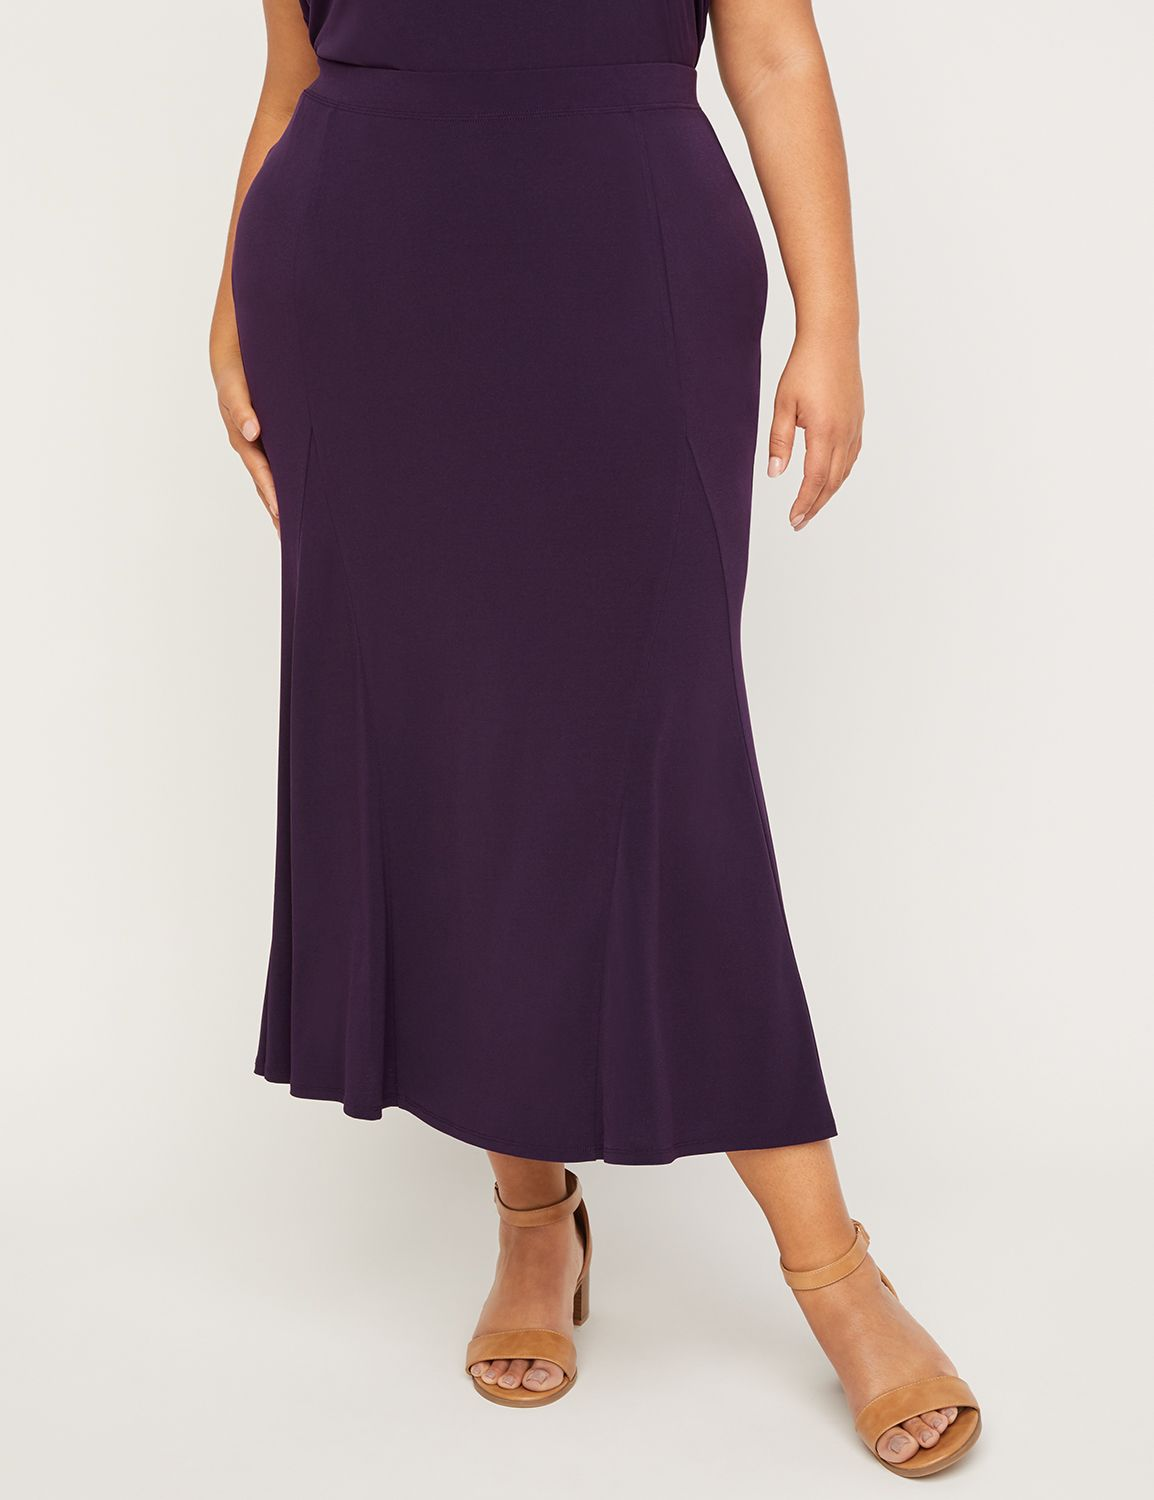 AnyWear Plum Swing Skirt